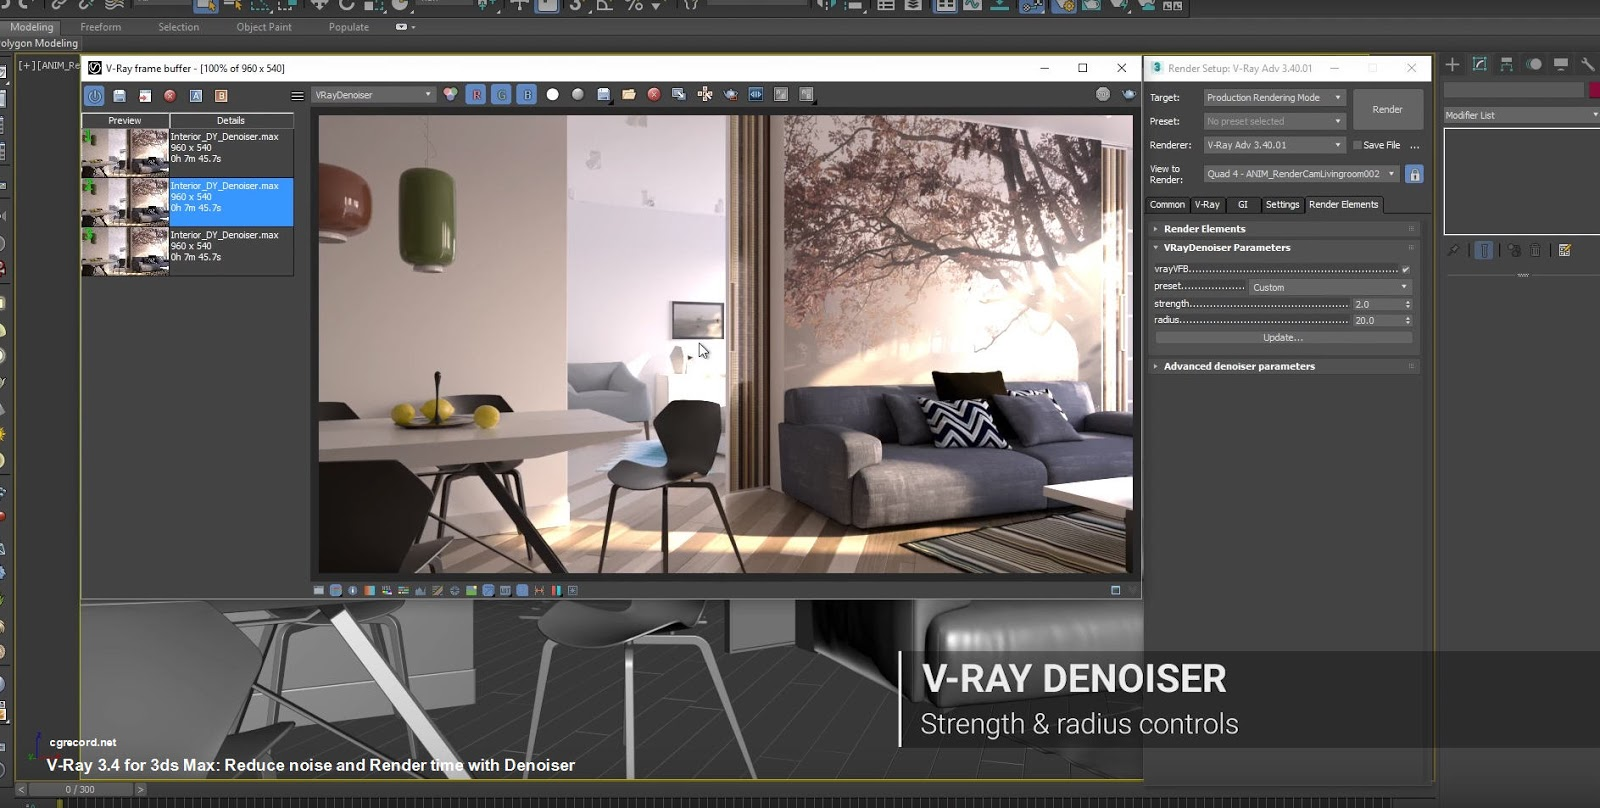 V-Ray 3 4 for 3ds Max: Reduce noise and Render time with